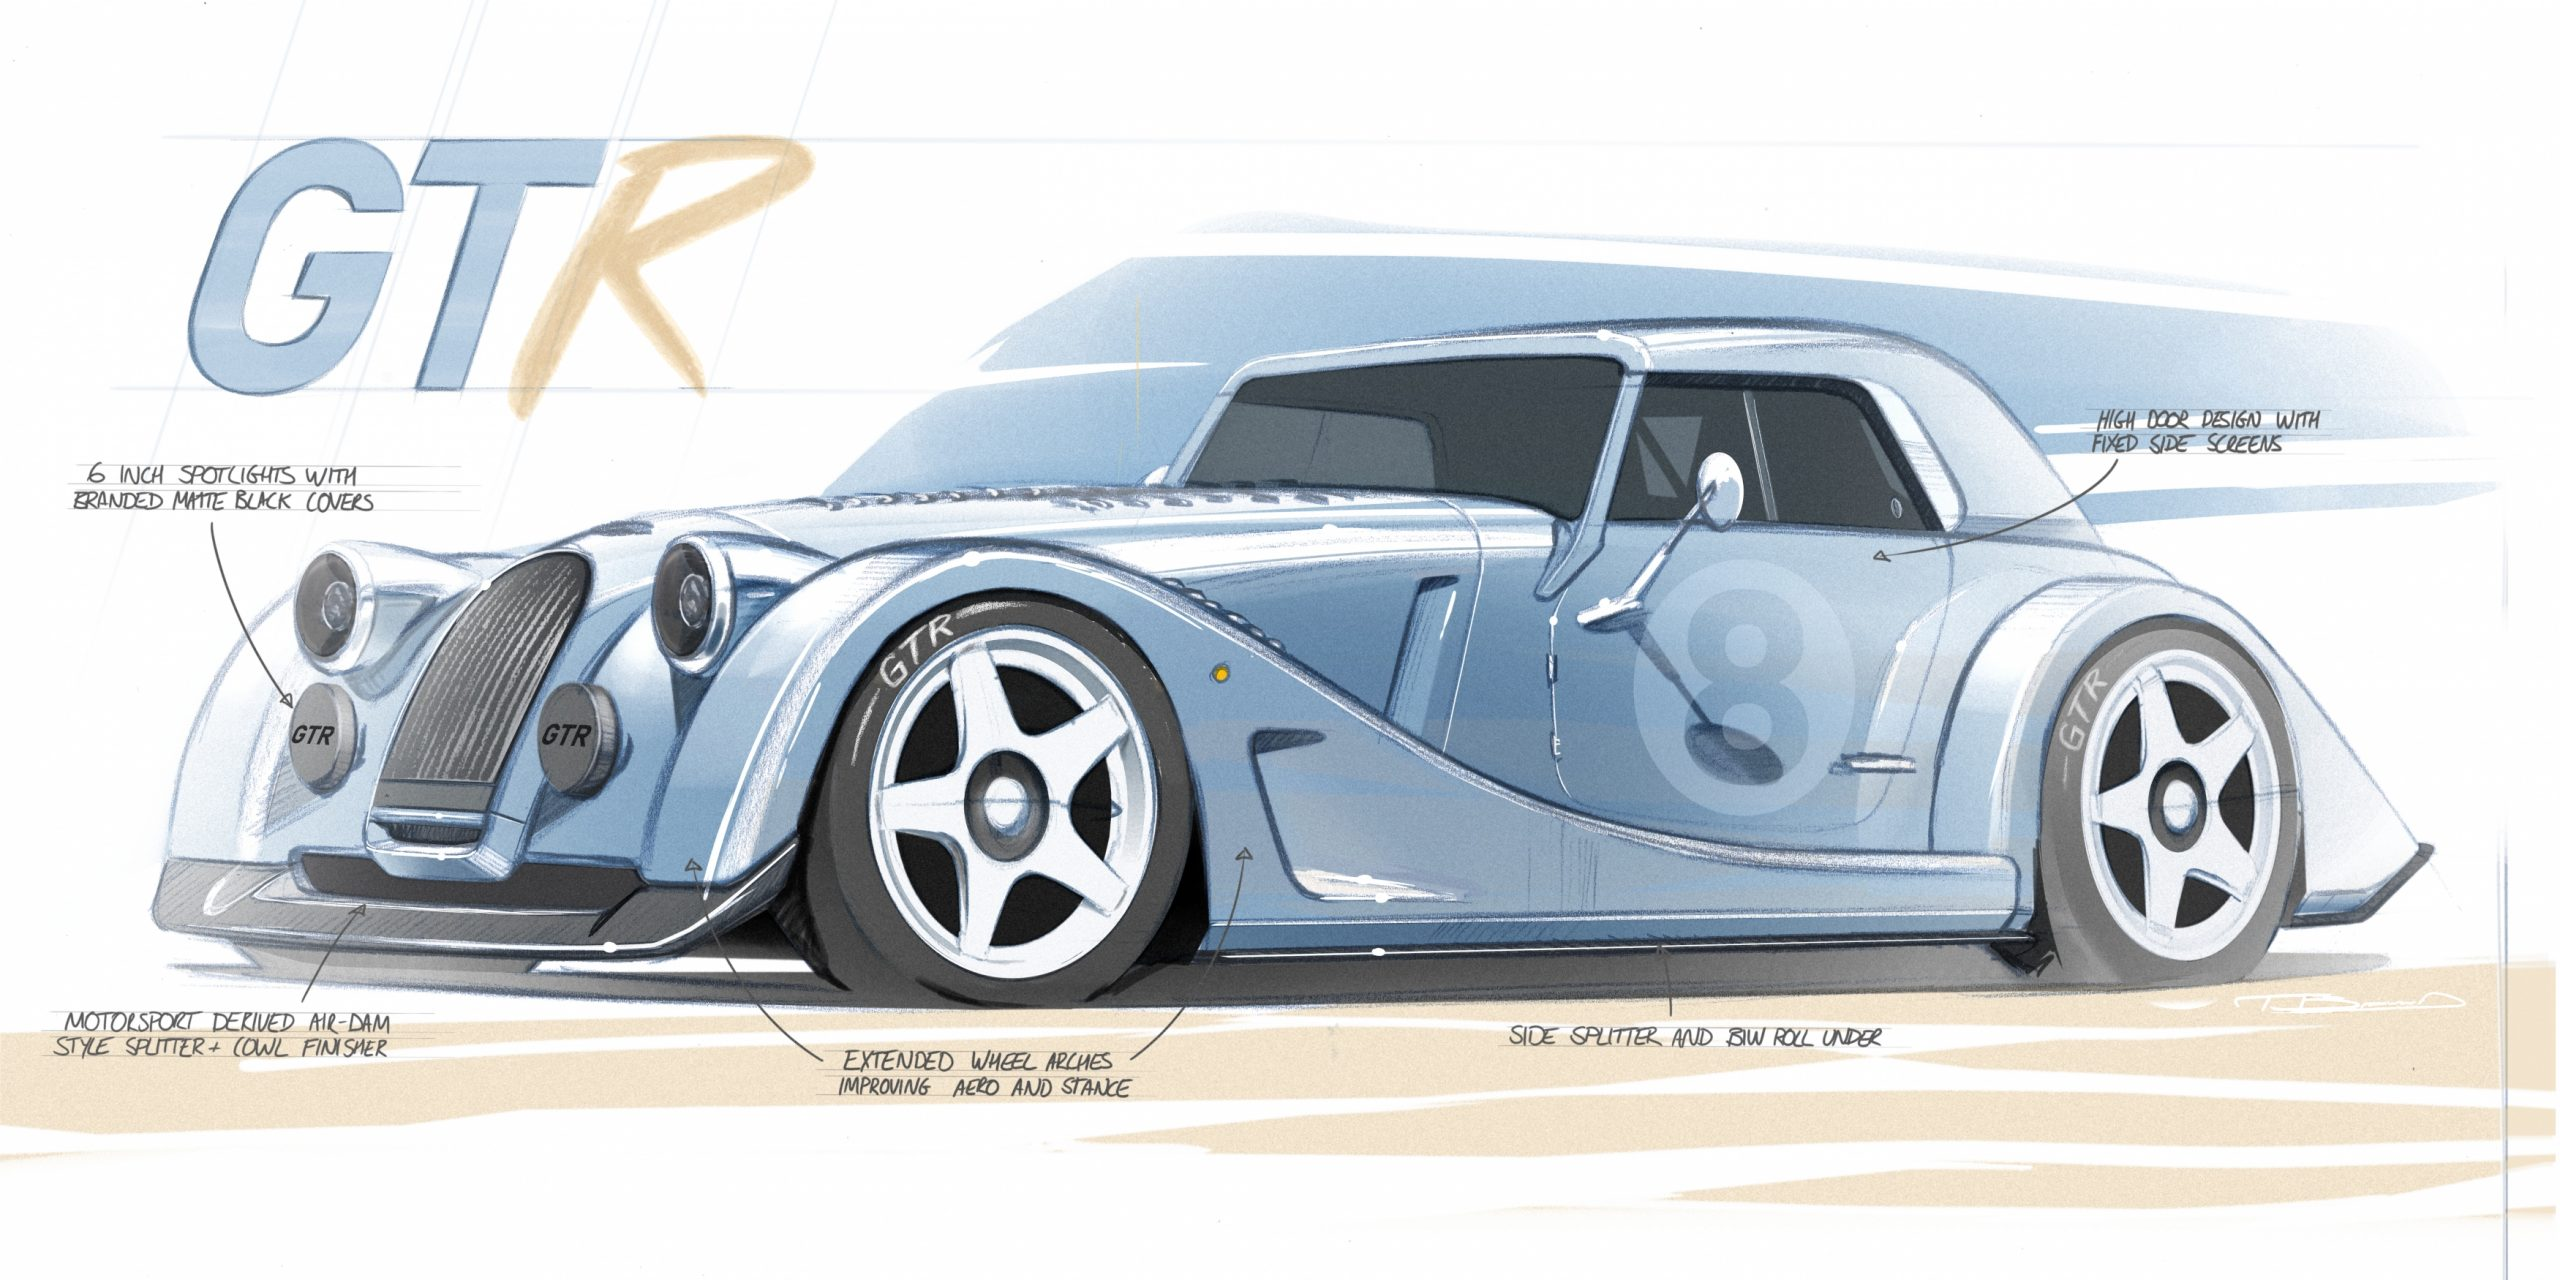 The Morgan Plus 8 is roaring back… for a limited time only